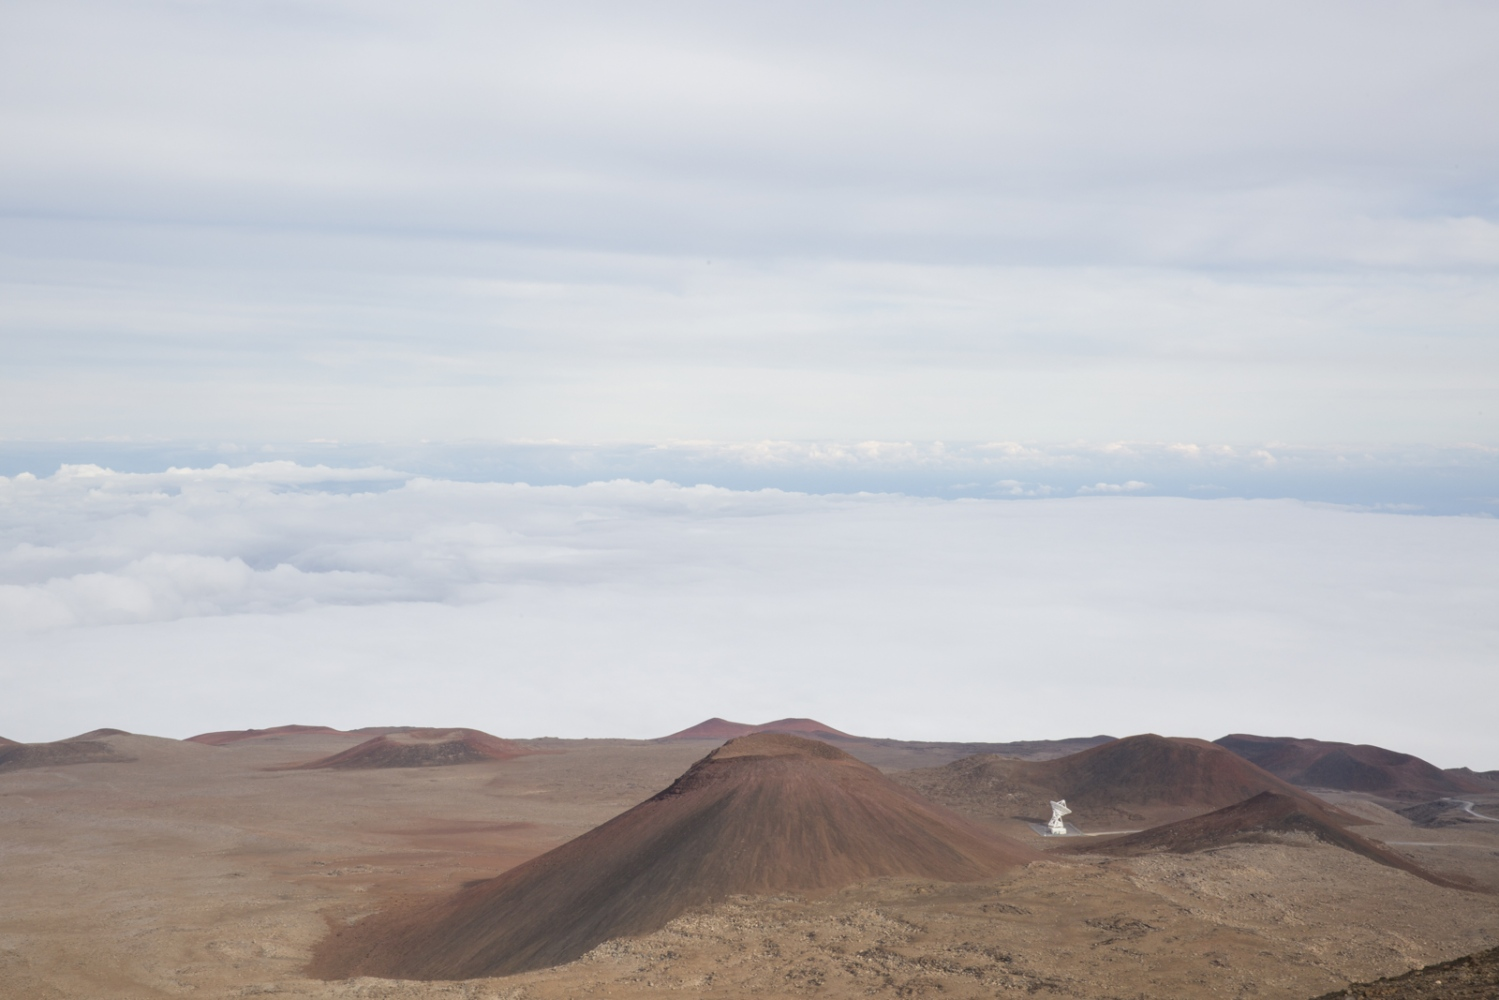 A landscape with a dormant crater and a satellite is photographed from the top of volcano Mauna Kea, about a million years old, which raises 13,796 ft above sea level. Hawaii, Big Island.